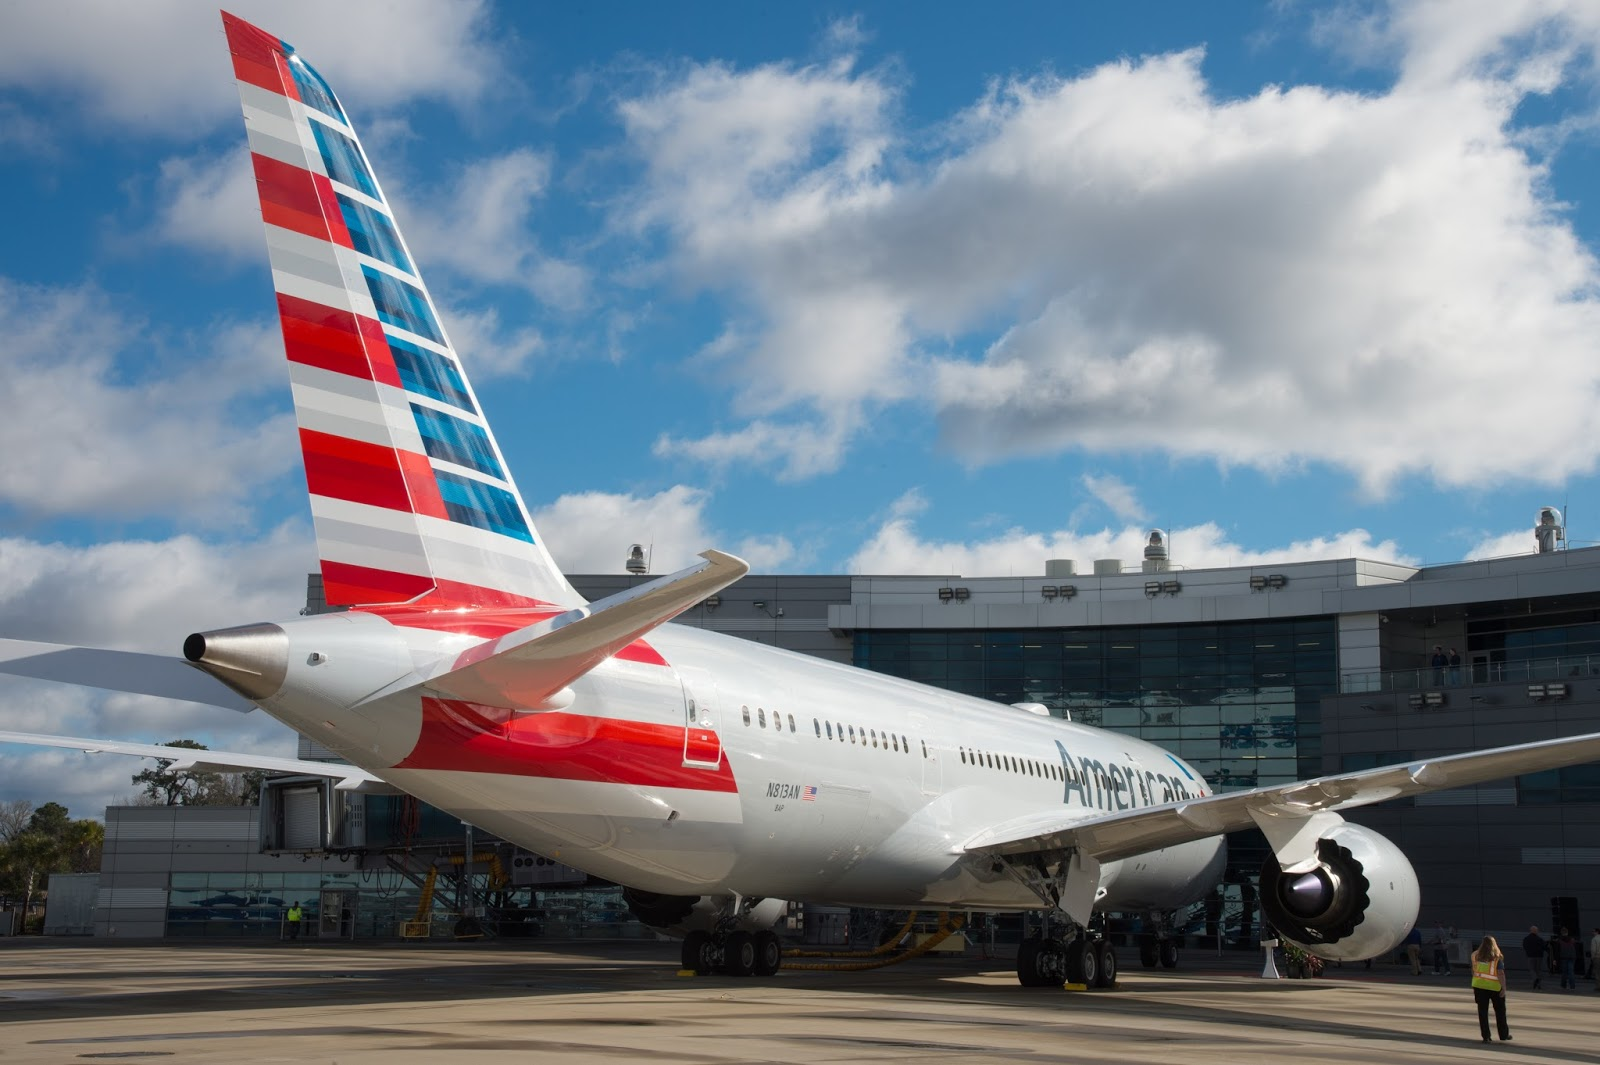 Boeing South Carolina's Delivers 100th Boeing 787 for American Airlines